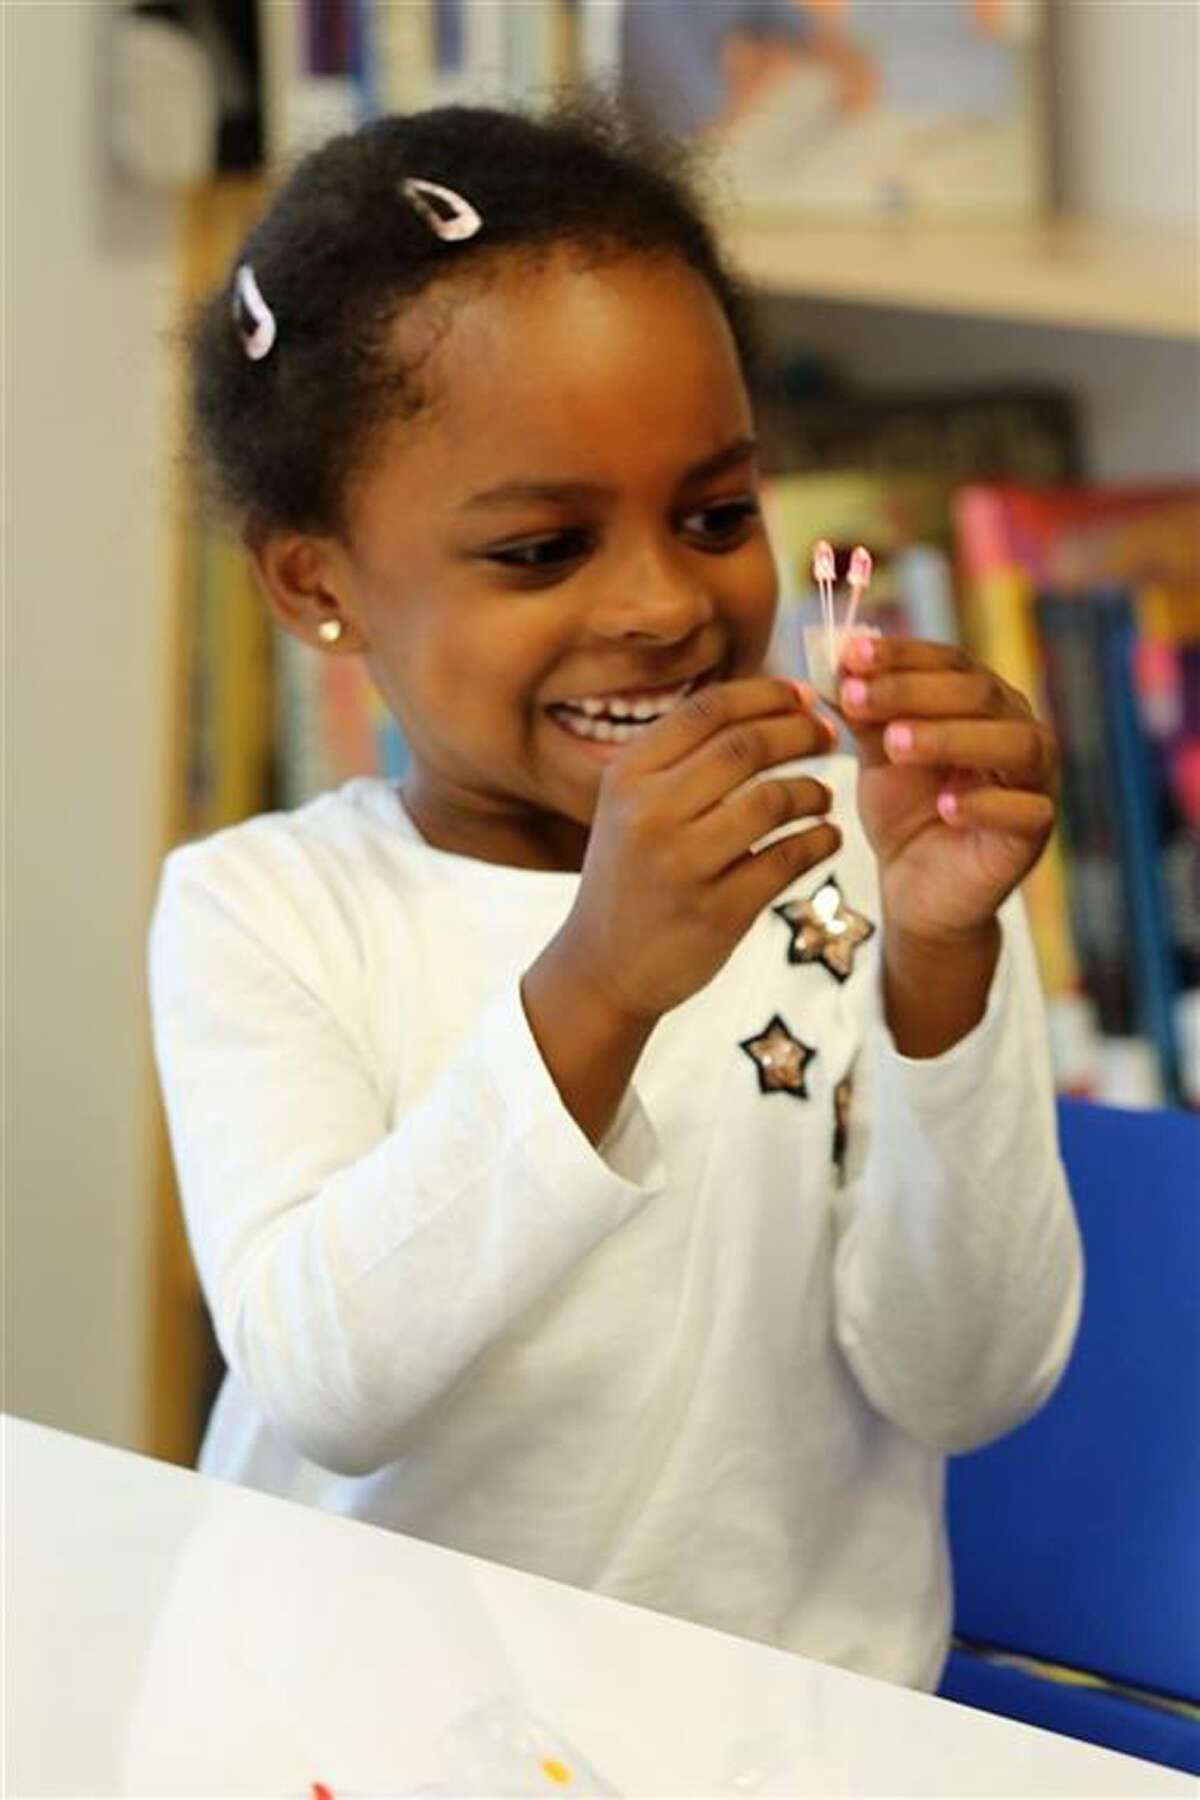 The reopening of the New Canaan Country School's Library has sparked creativity. Kindergartners experiment with LED lights in Country School library's new addition of the Amicus Foundation Innovation Space. - Contributed photo